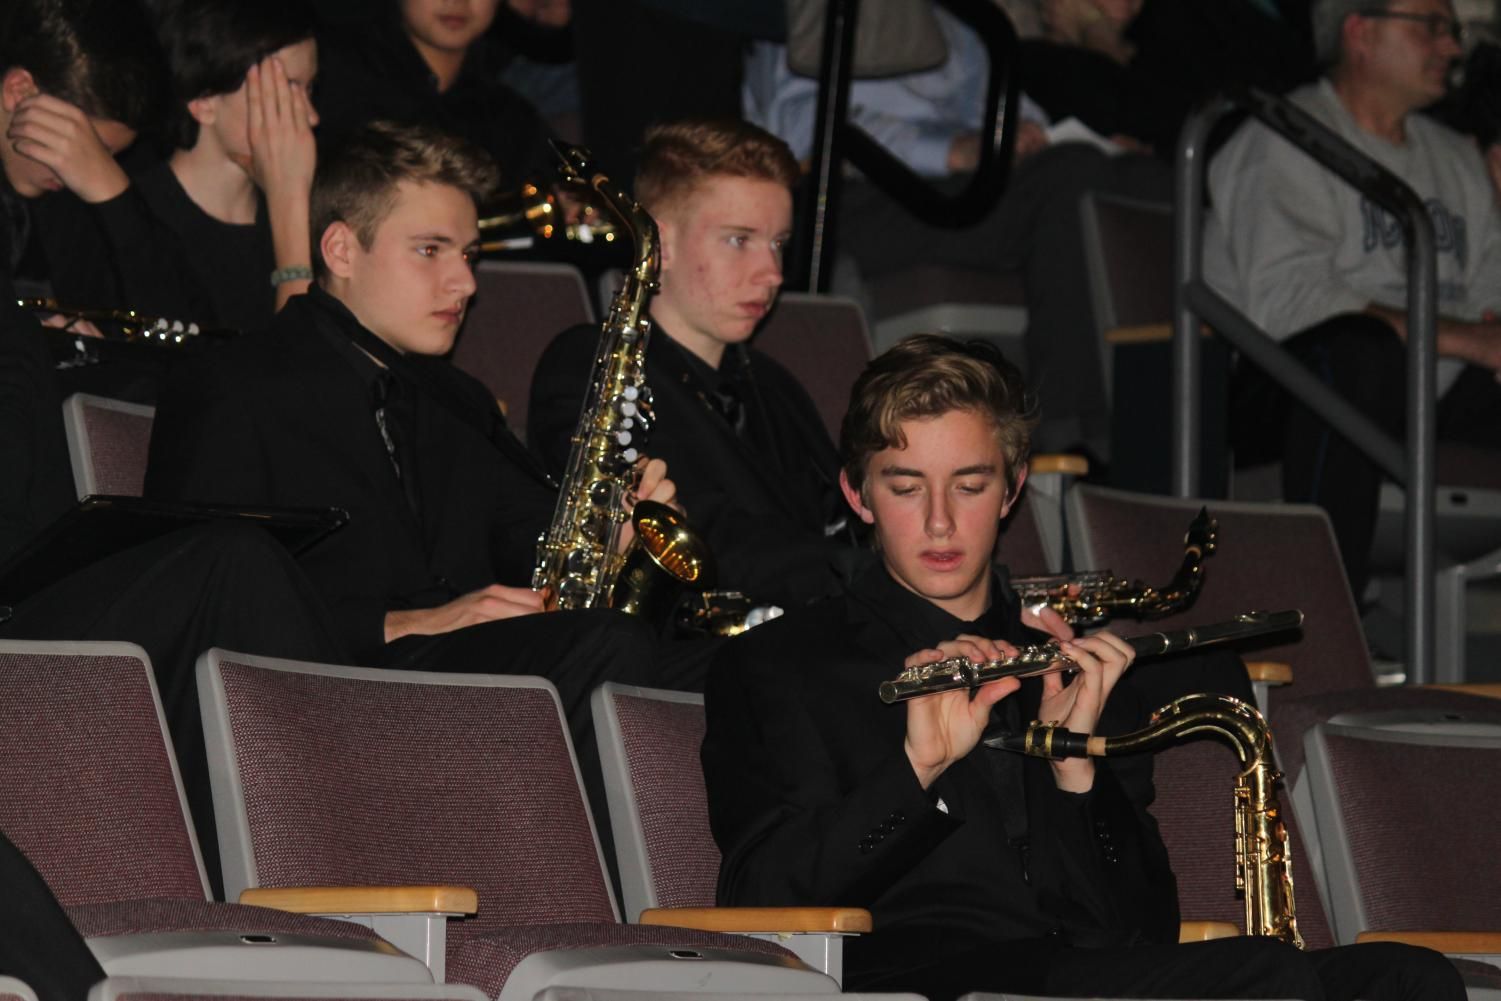 Senior+Tyler+Dillon+holds+a+flute+in+the+band+section+of+the+audience+after+conducting+a+song+onstage.